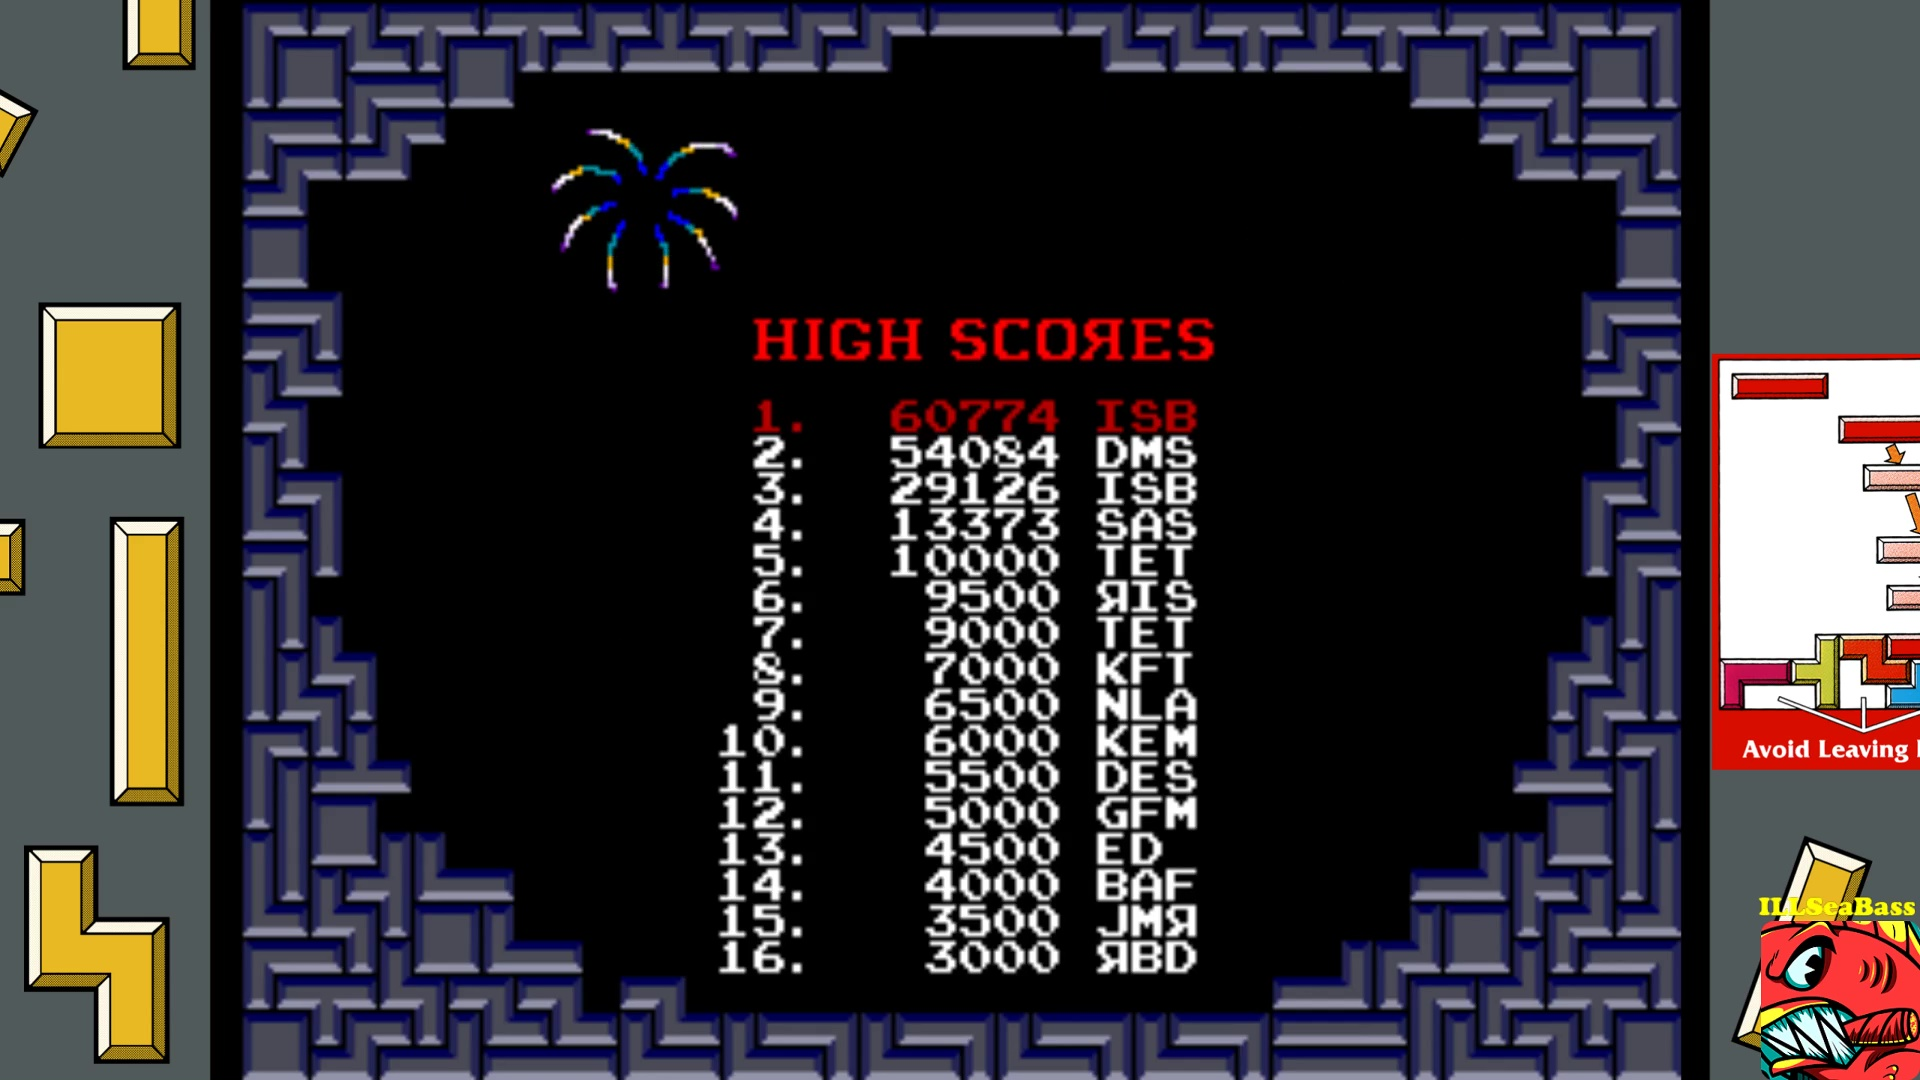 ILLSeaBass: Tetris (Arcade Emulated / M.A.M.E.) 60,774 points on 2017-09-30 10:06:54